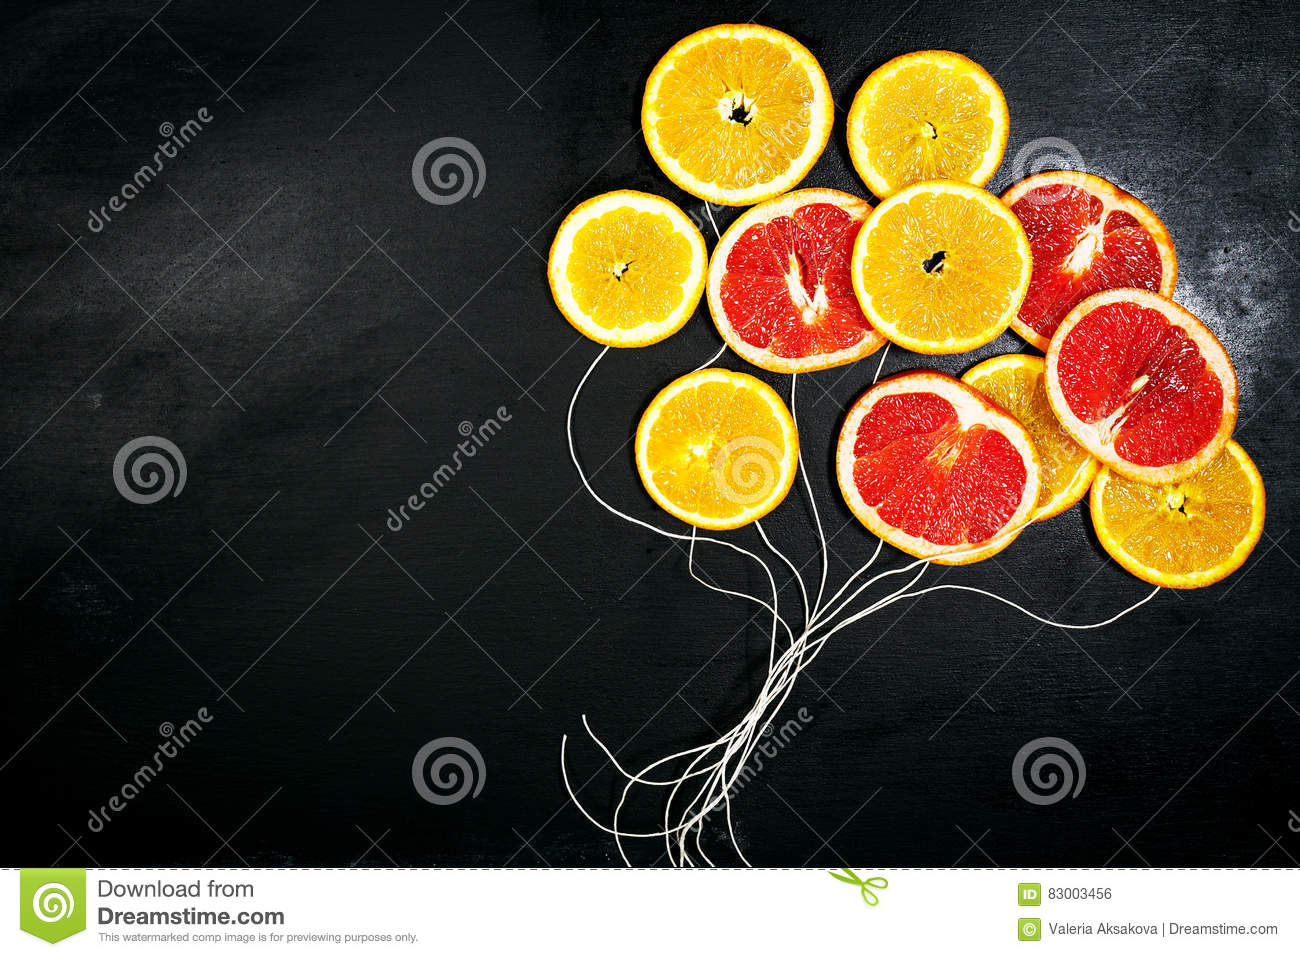 Food Art. Fruit slices on a dark Chalkboard Background with strings. Balloons from fruit slices. Healthy life, detox concept.